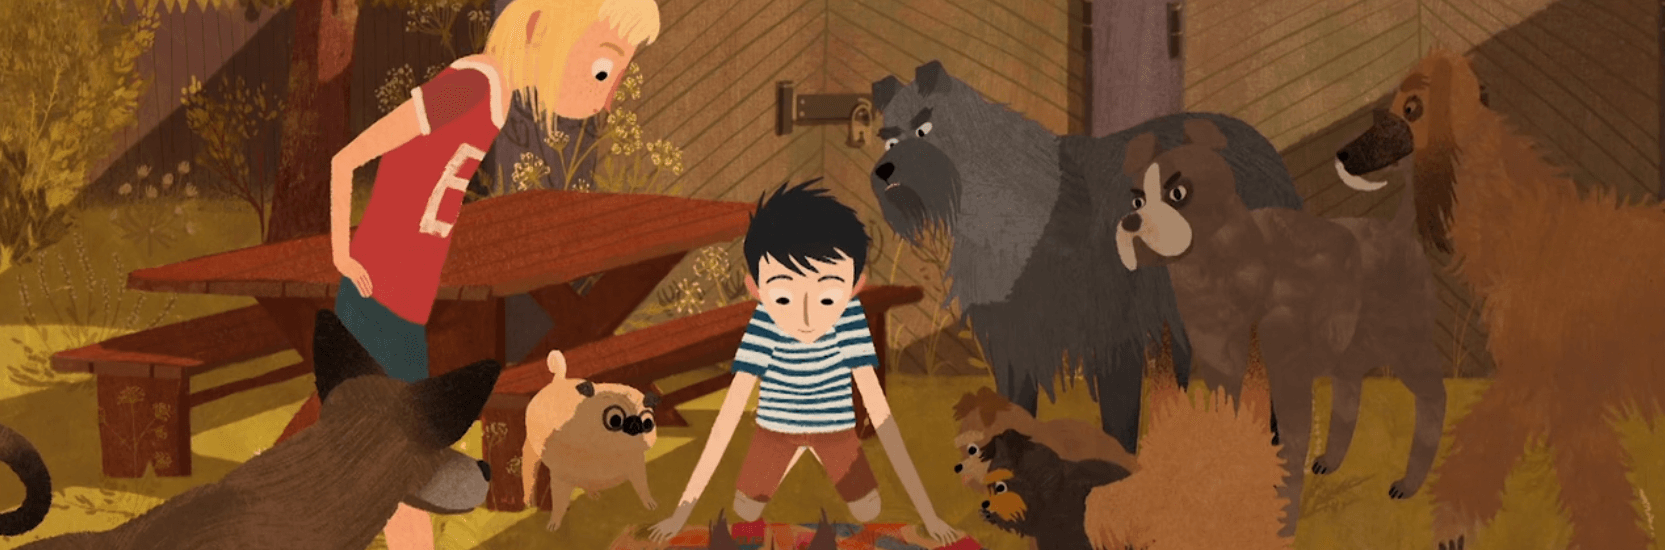 Cartoon Movie 2018 – Jacob, Mimmi and the talking dogs